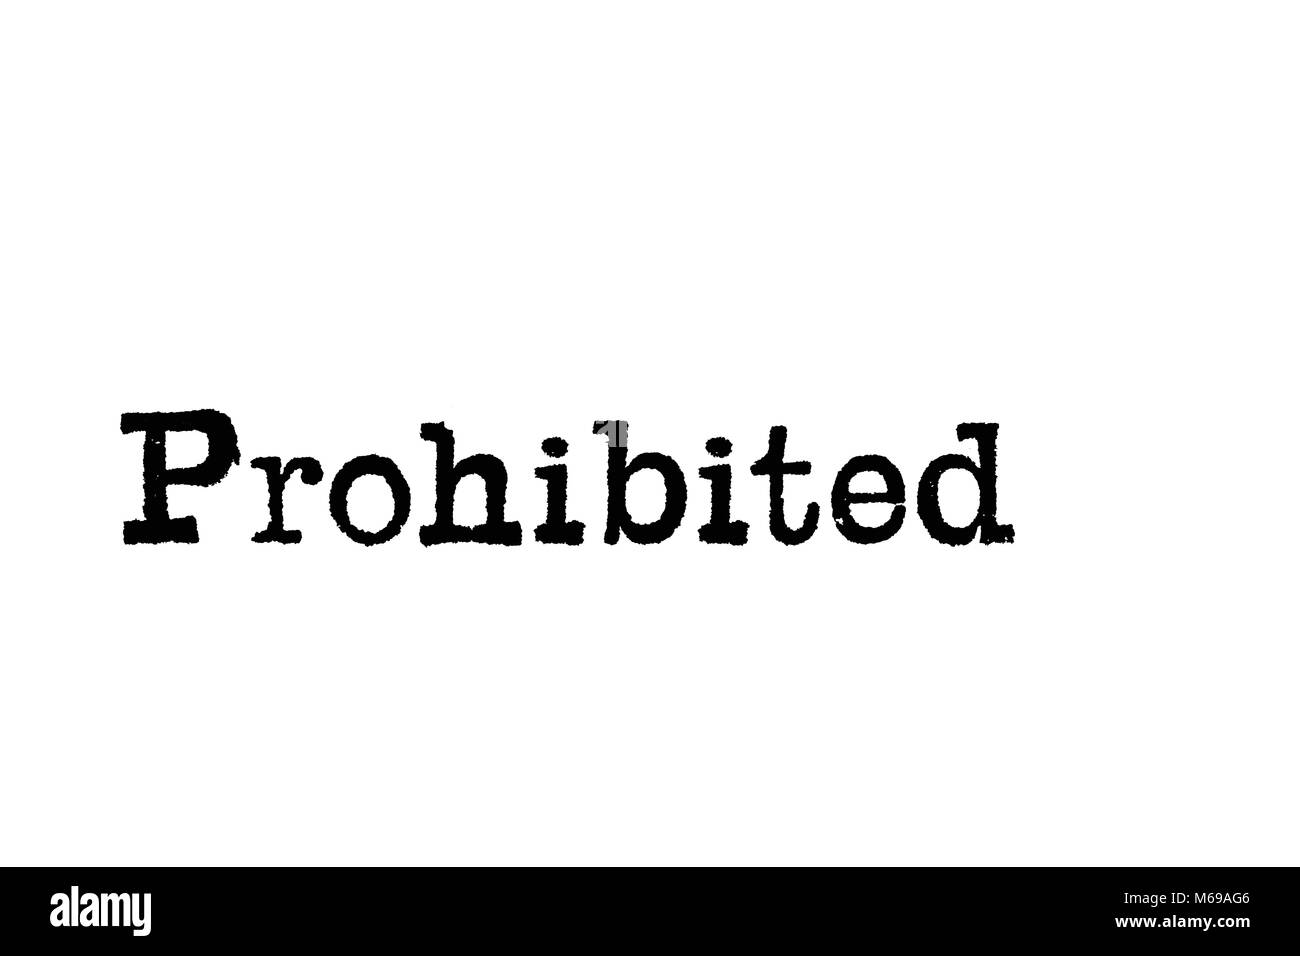 The word Prohibited from a typewriter on a white background - Stock Image